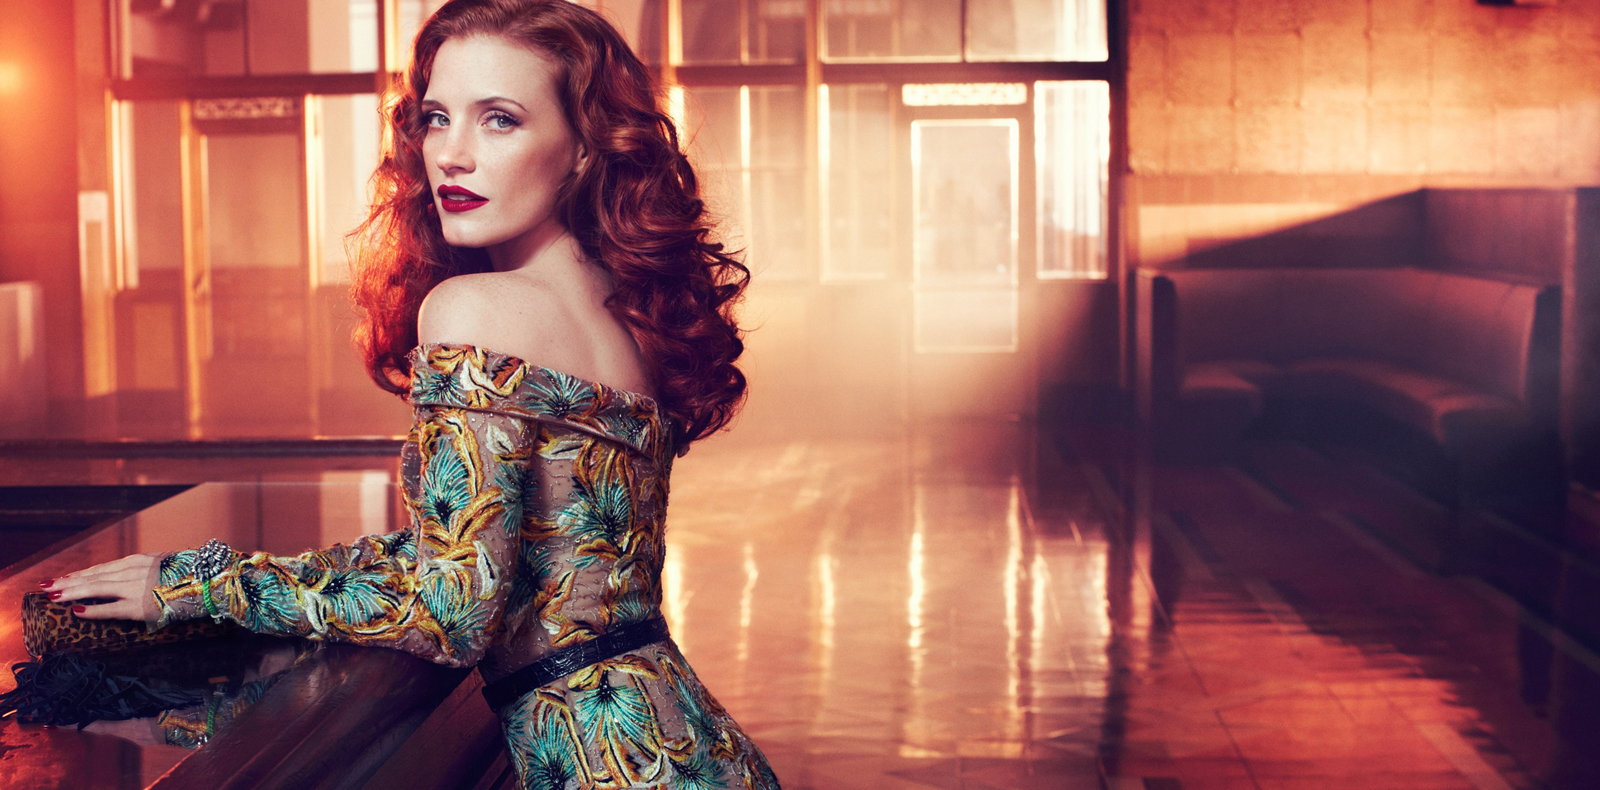 Jessica Chastain by Michelangelo di Battista